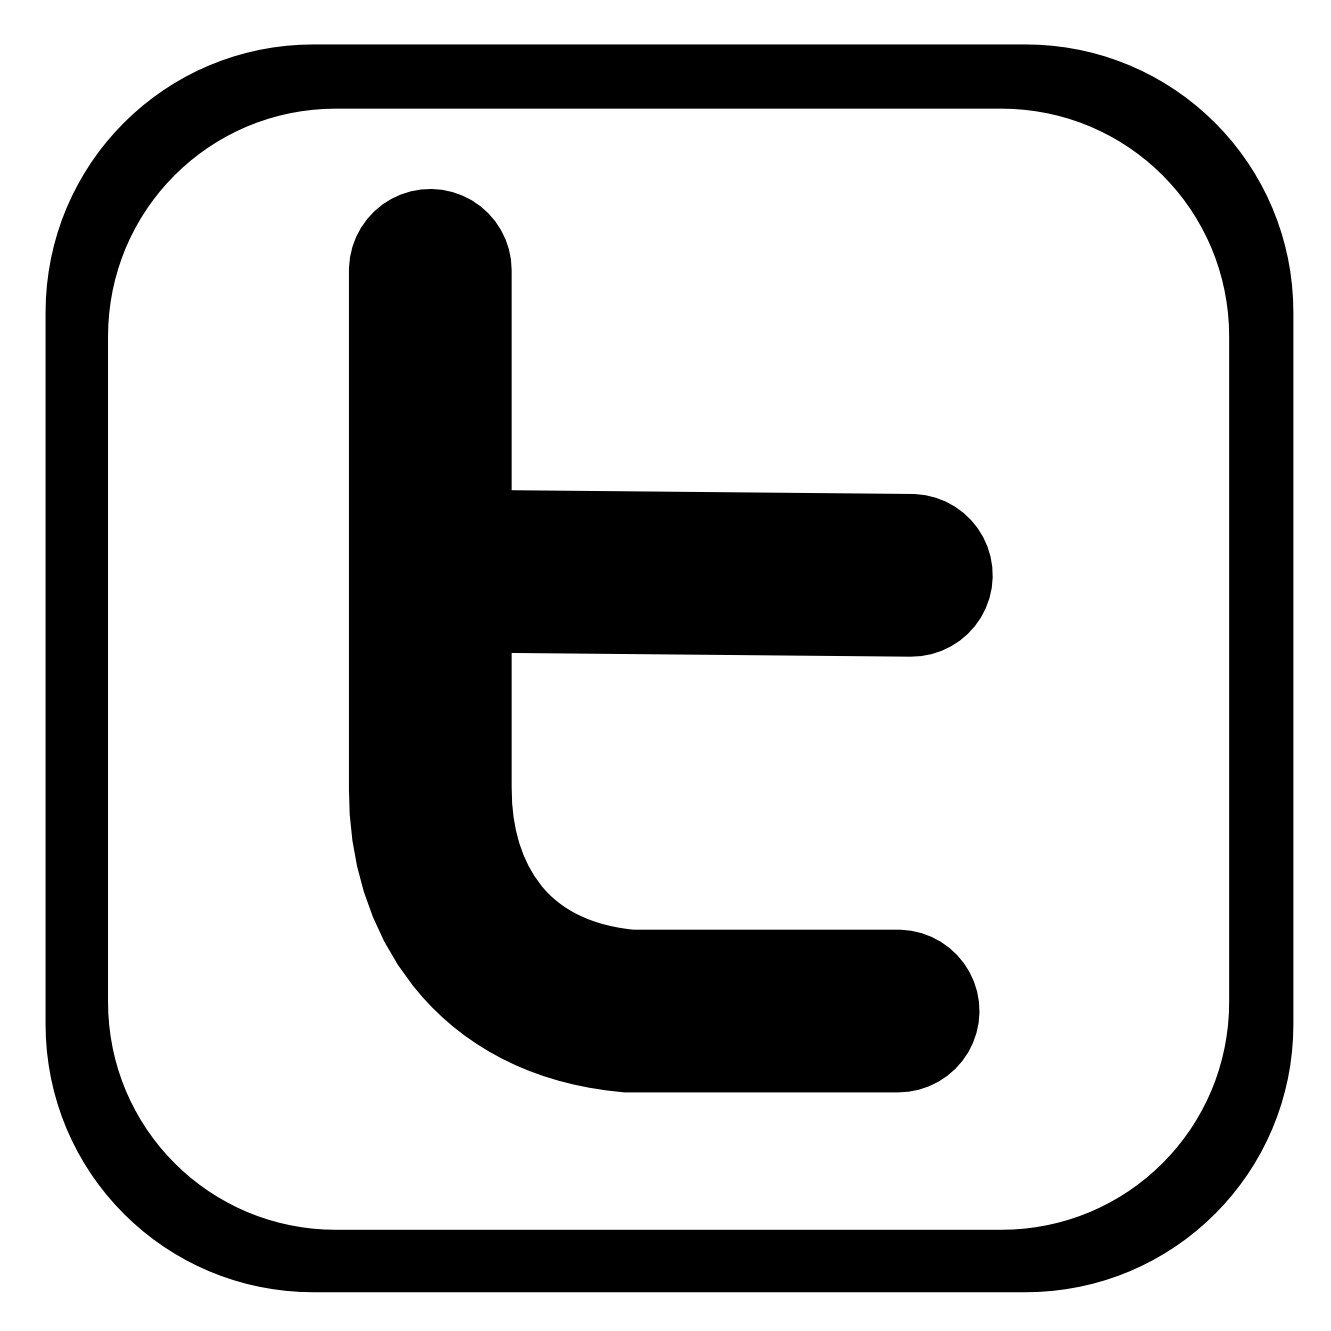 twitter png white images logo #5877